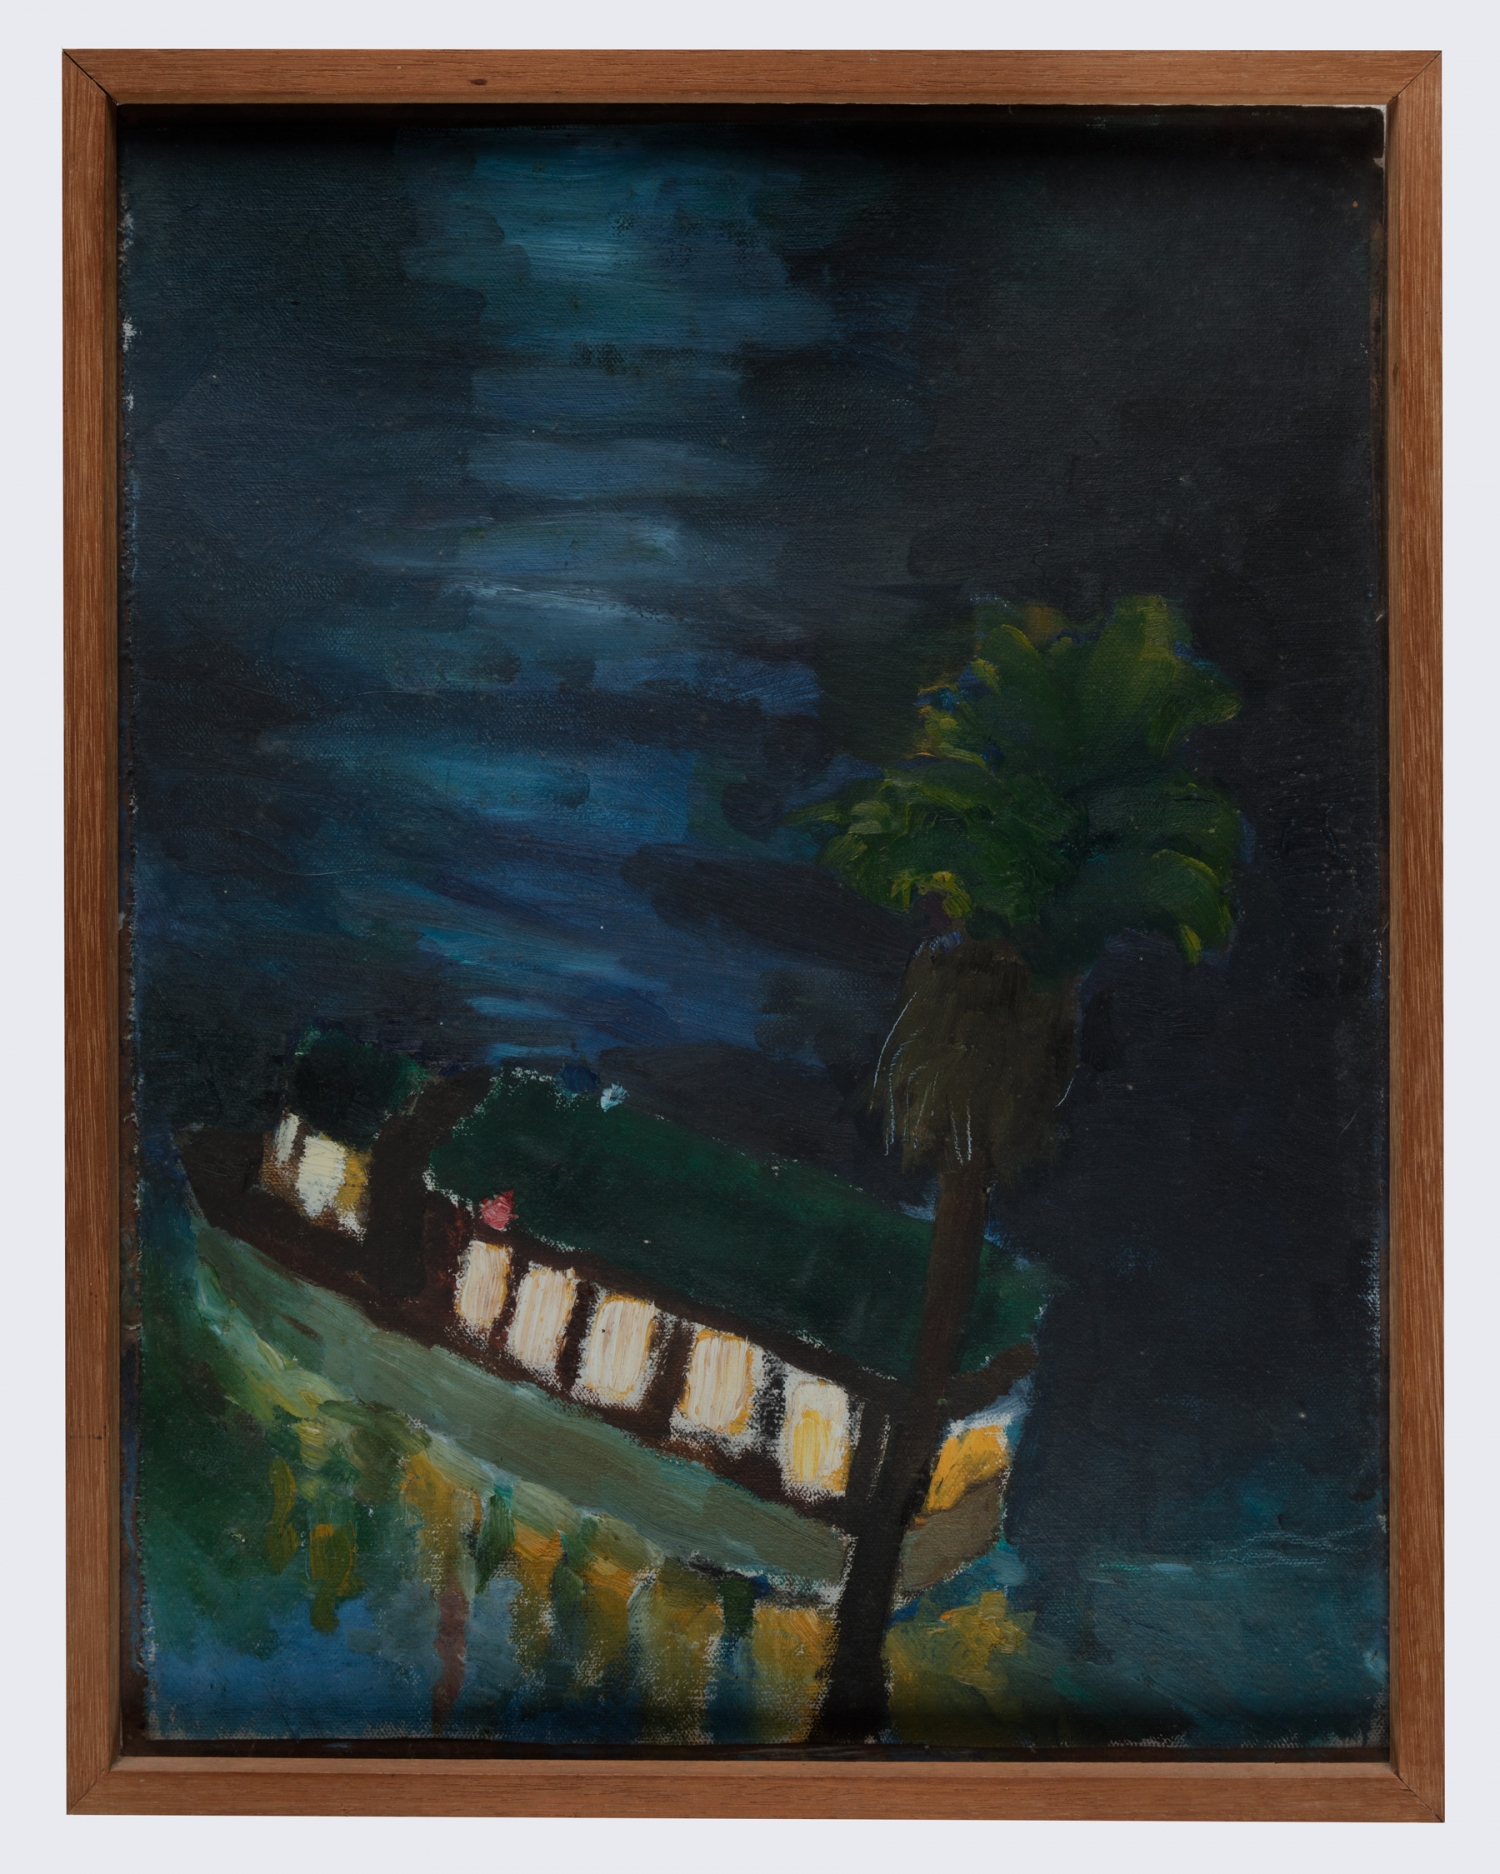 Oil painting of dark harbour scene with lit up ferry on water.